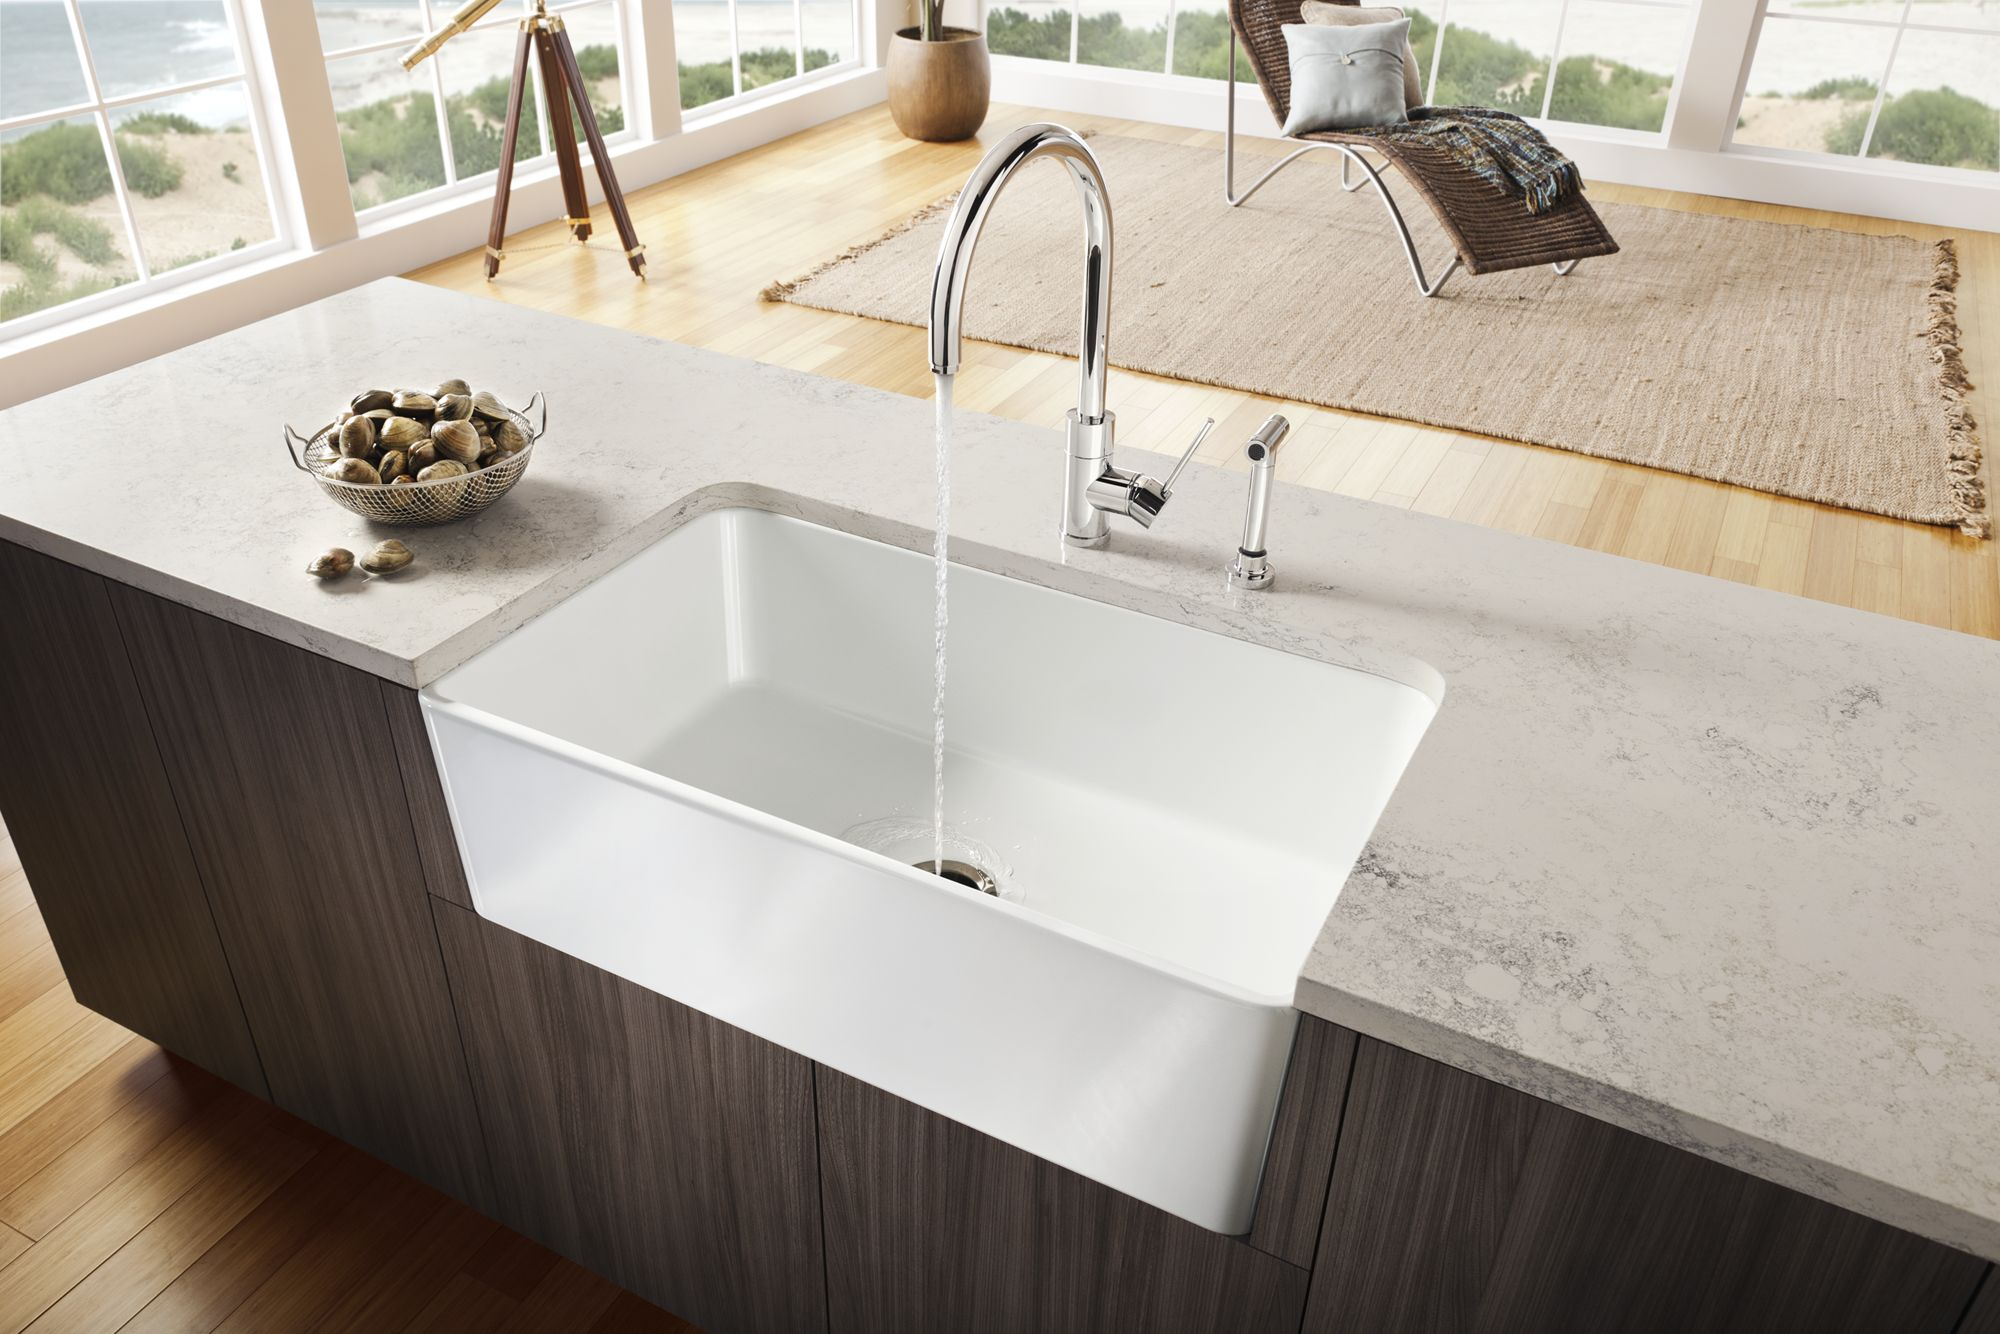 cerana farmhouse faucetdirect sink com white blanco fireclay style kitchen single basin faucet